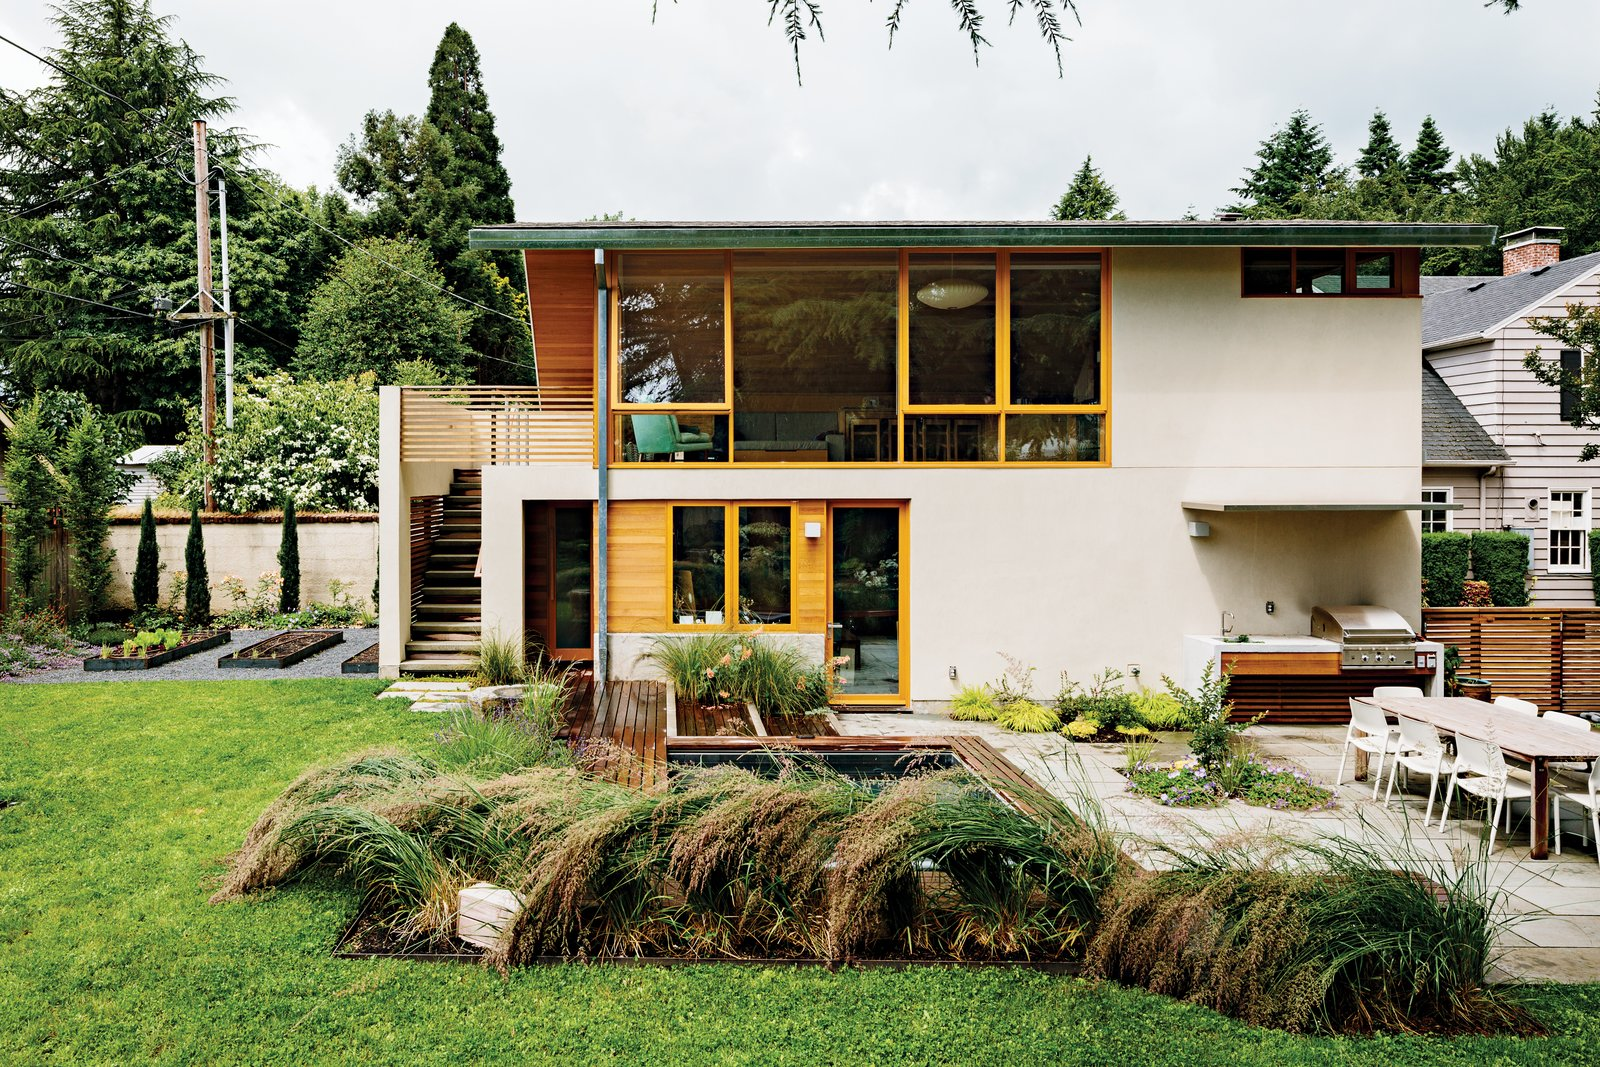 Articles about salvaged wood renovation portland on Dwell.com